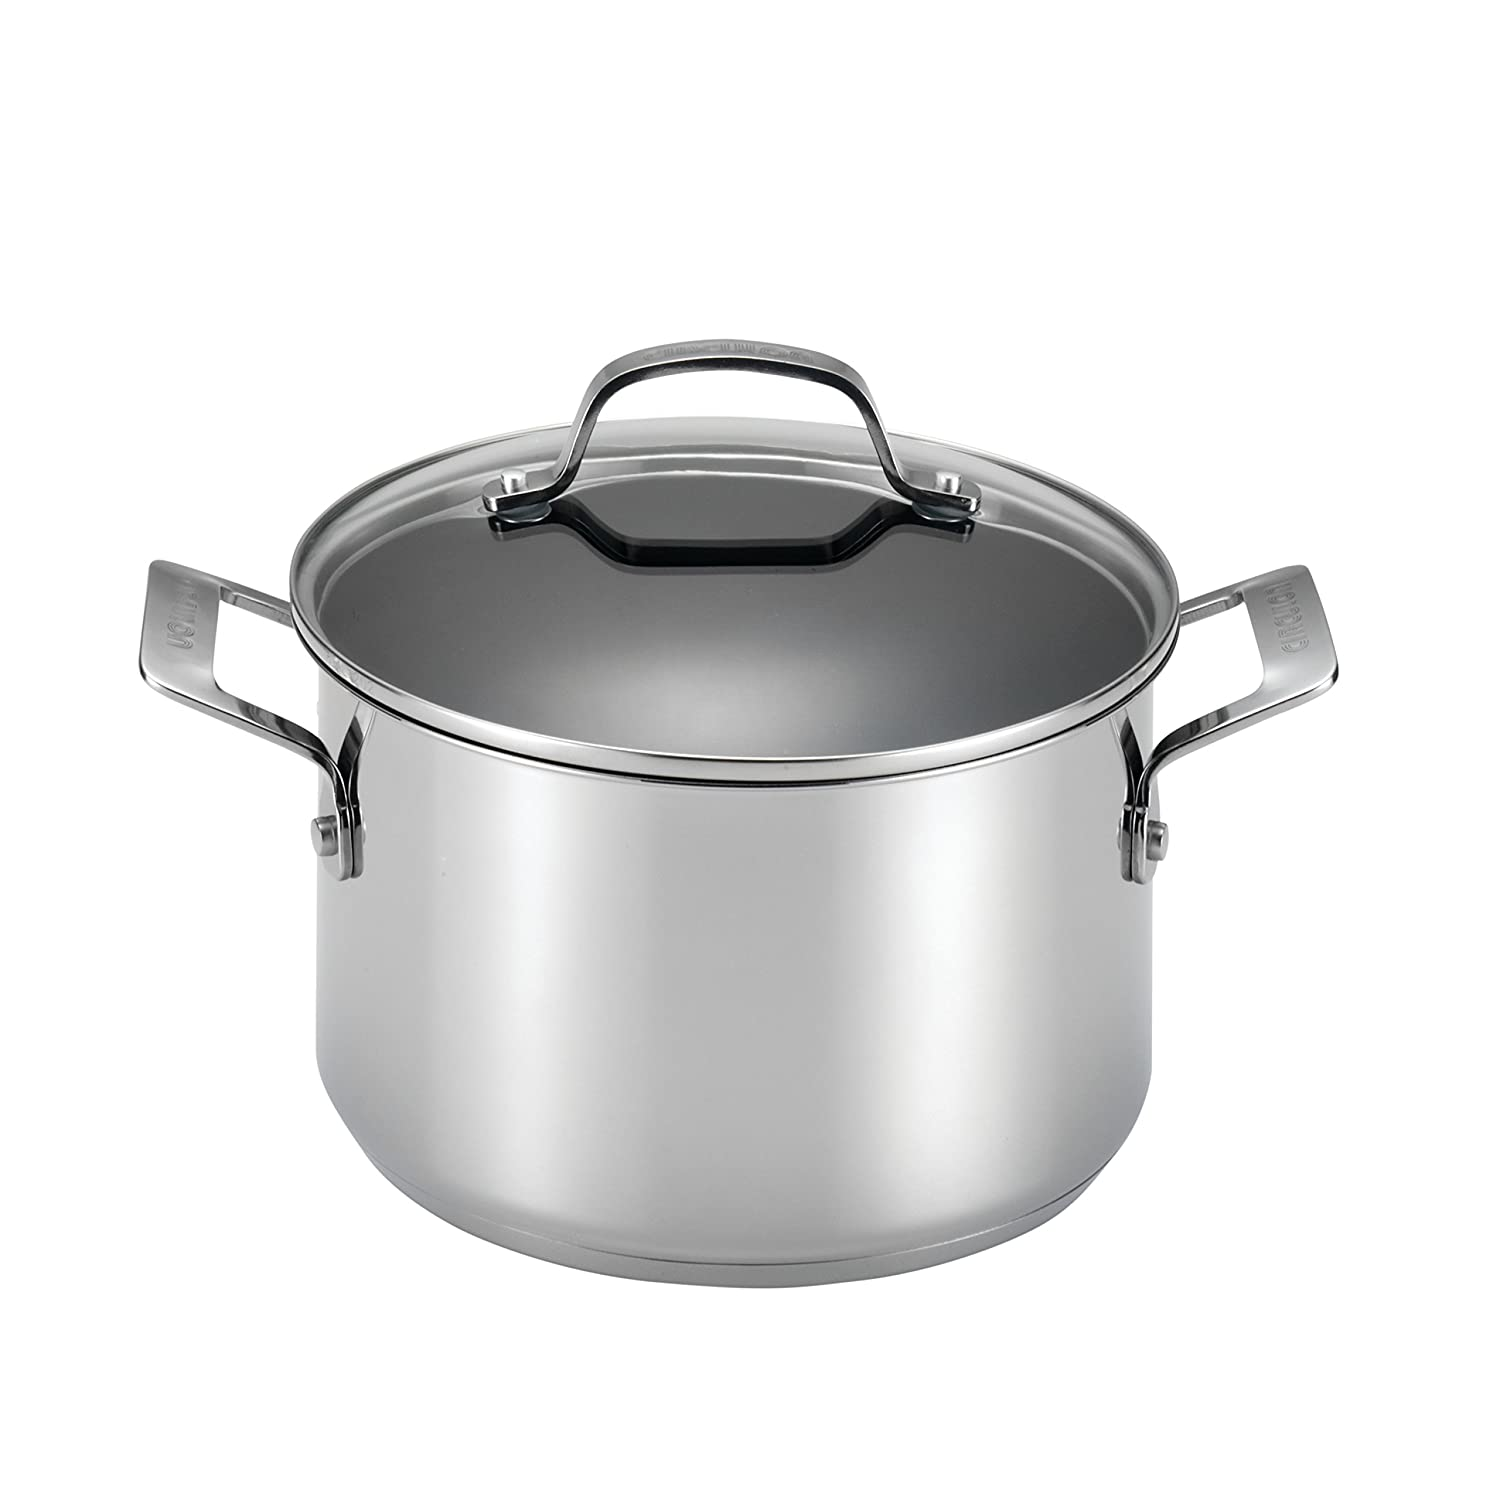 Circulon Genesis Stainless Steel Nonstick 5-Quart Covered Dutch Oven